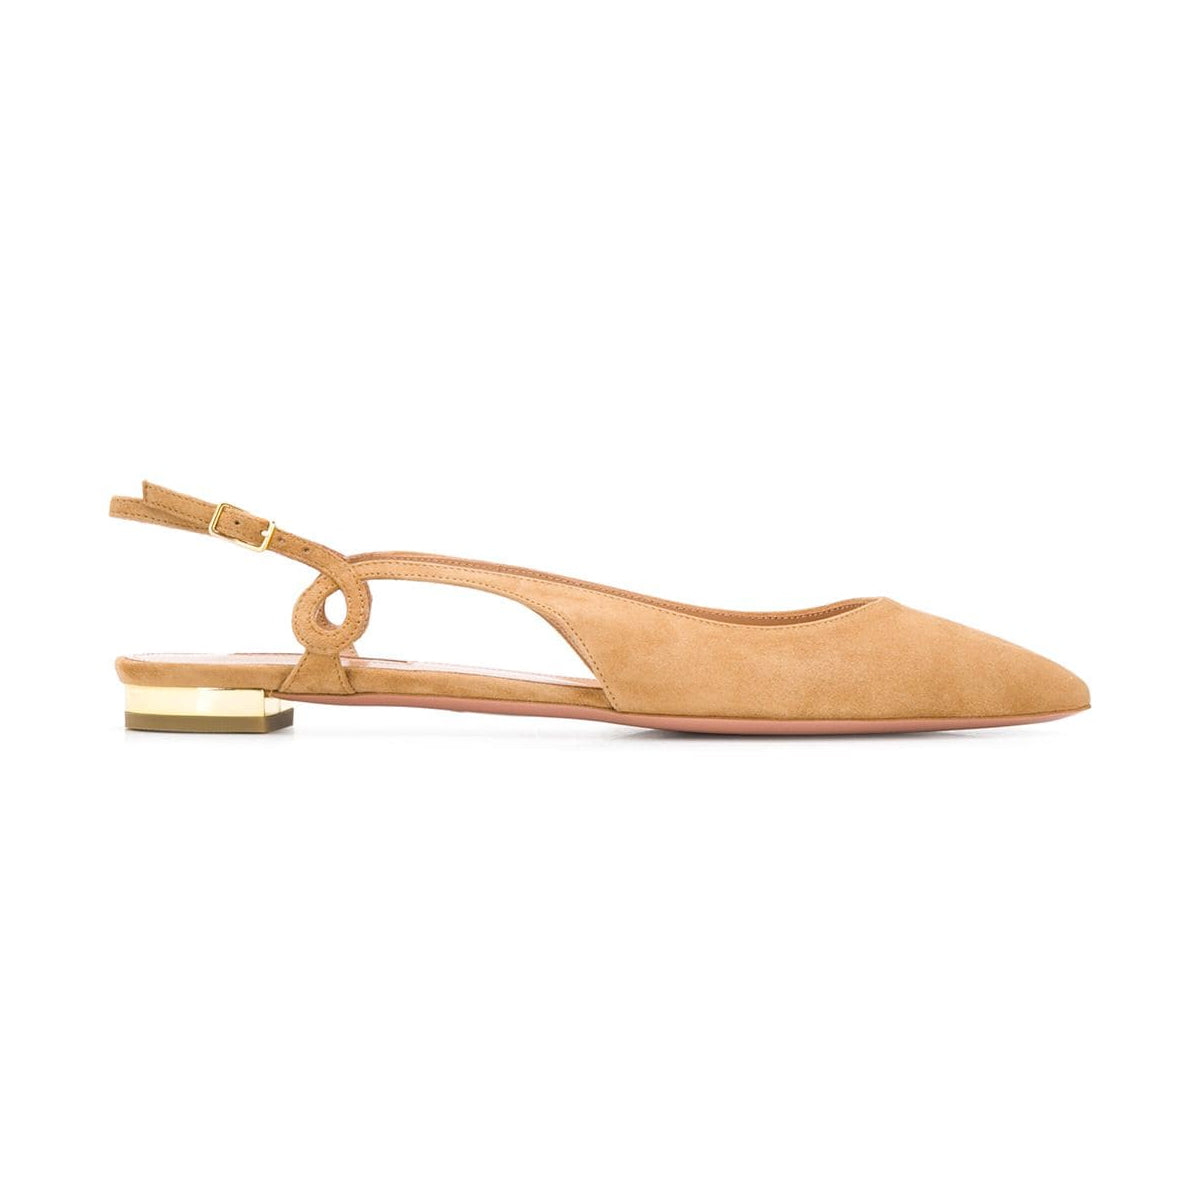 Serpentine Point Toe Slingback Suede Flats